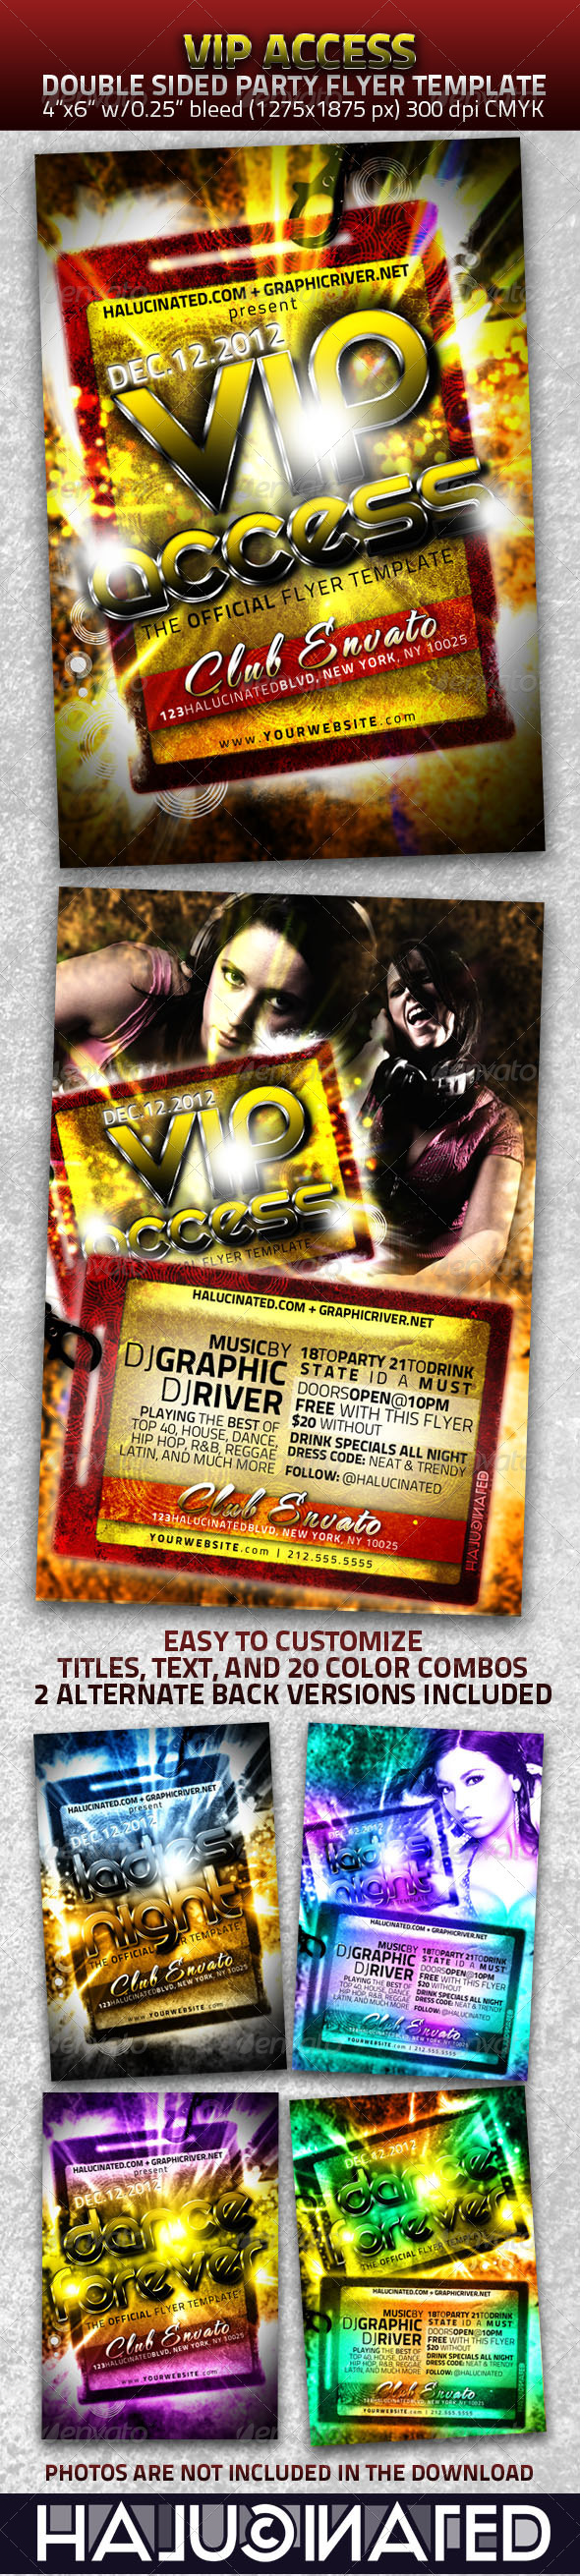 VIP Access Double Sided Party Flyer Template - Clubs & Parties Events